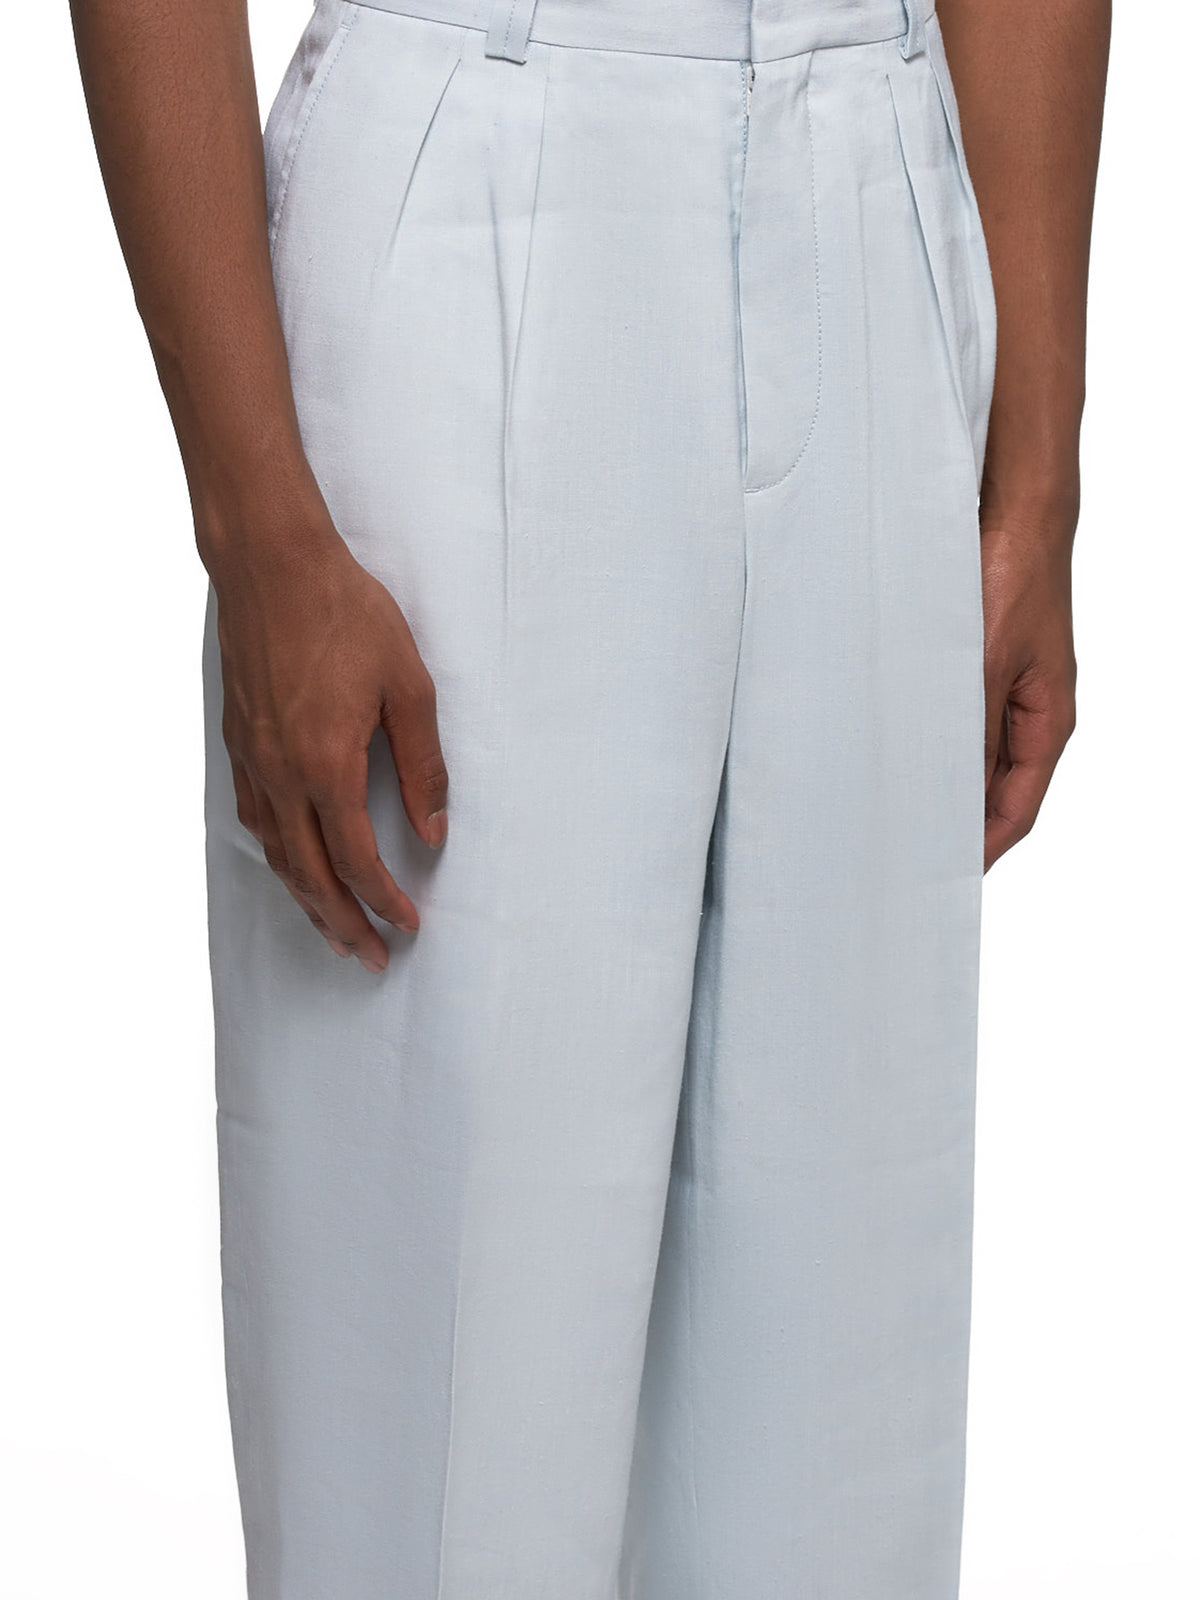 Le Costume Trousers (205P01-205-LIGHT-GREY)